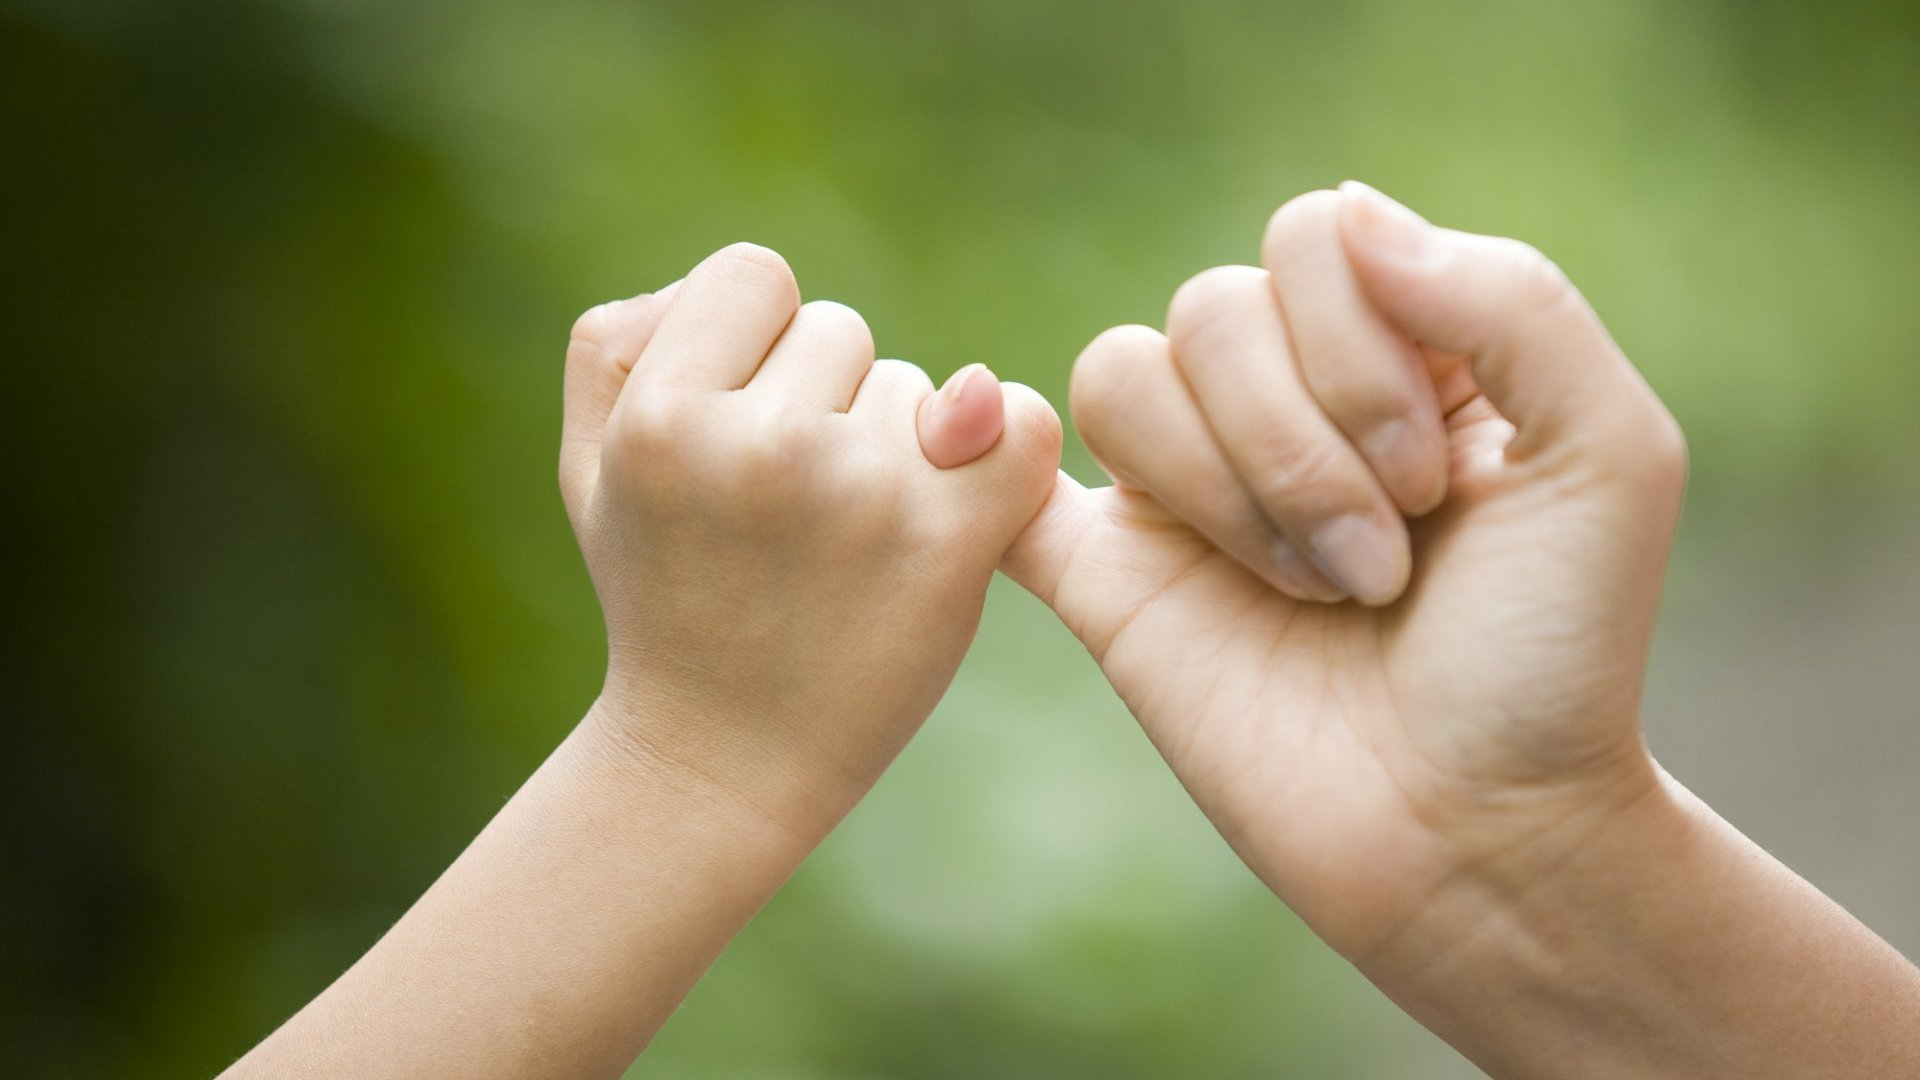 Trust is one of the first emotional bonds we develop.